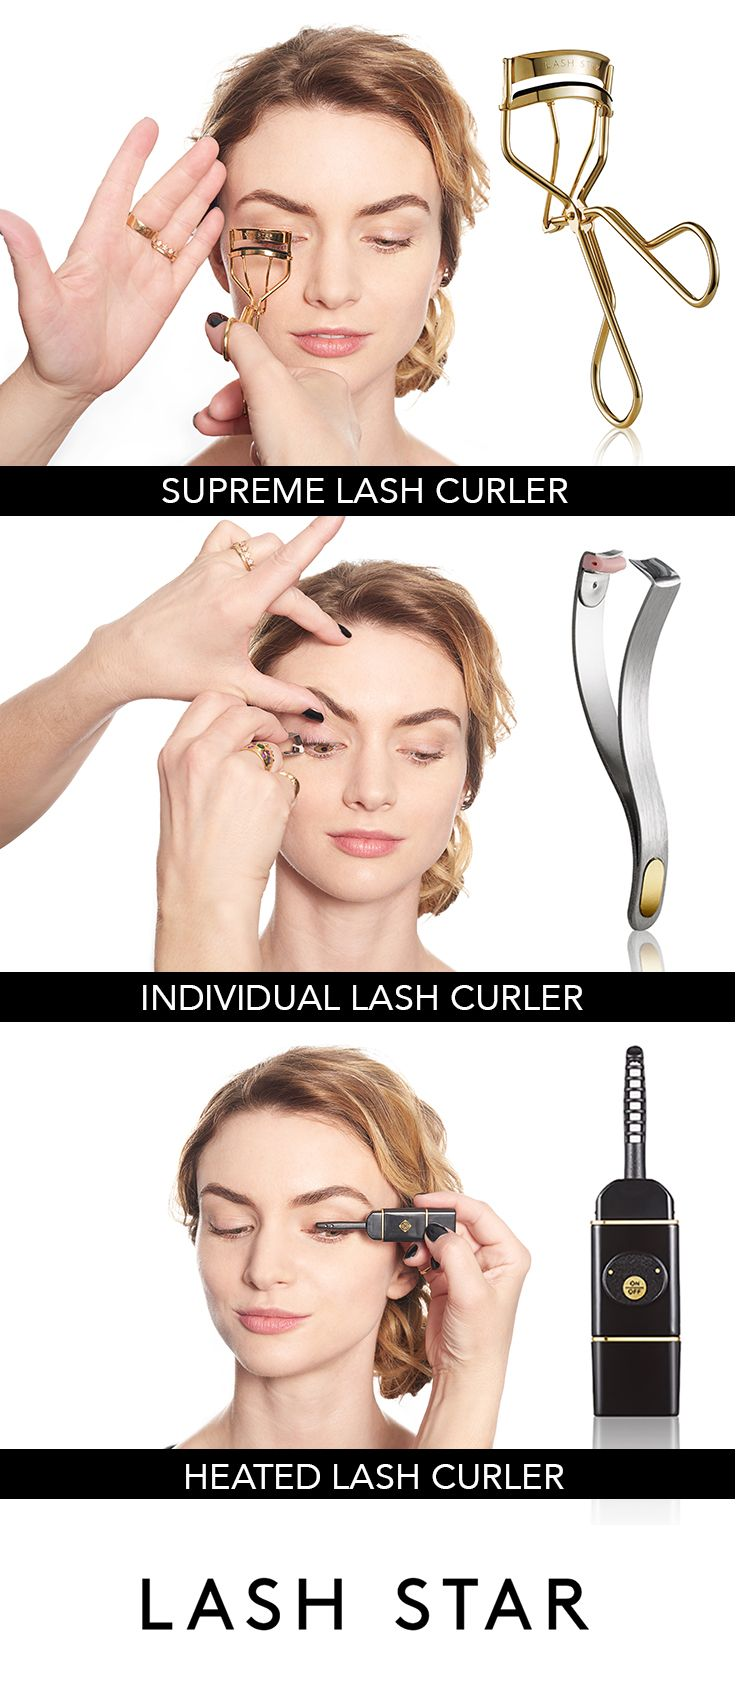 eyelash curler results. discover our collection of gold eyelash curlers, individual lash and heated curlers false applicator tools makeup brushes. curler results